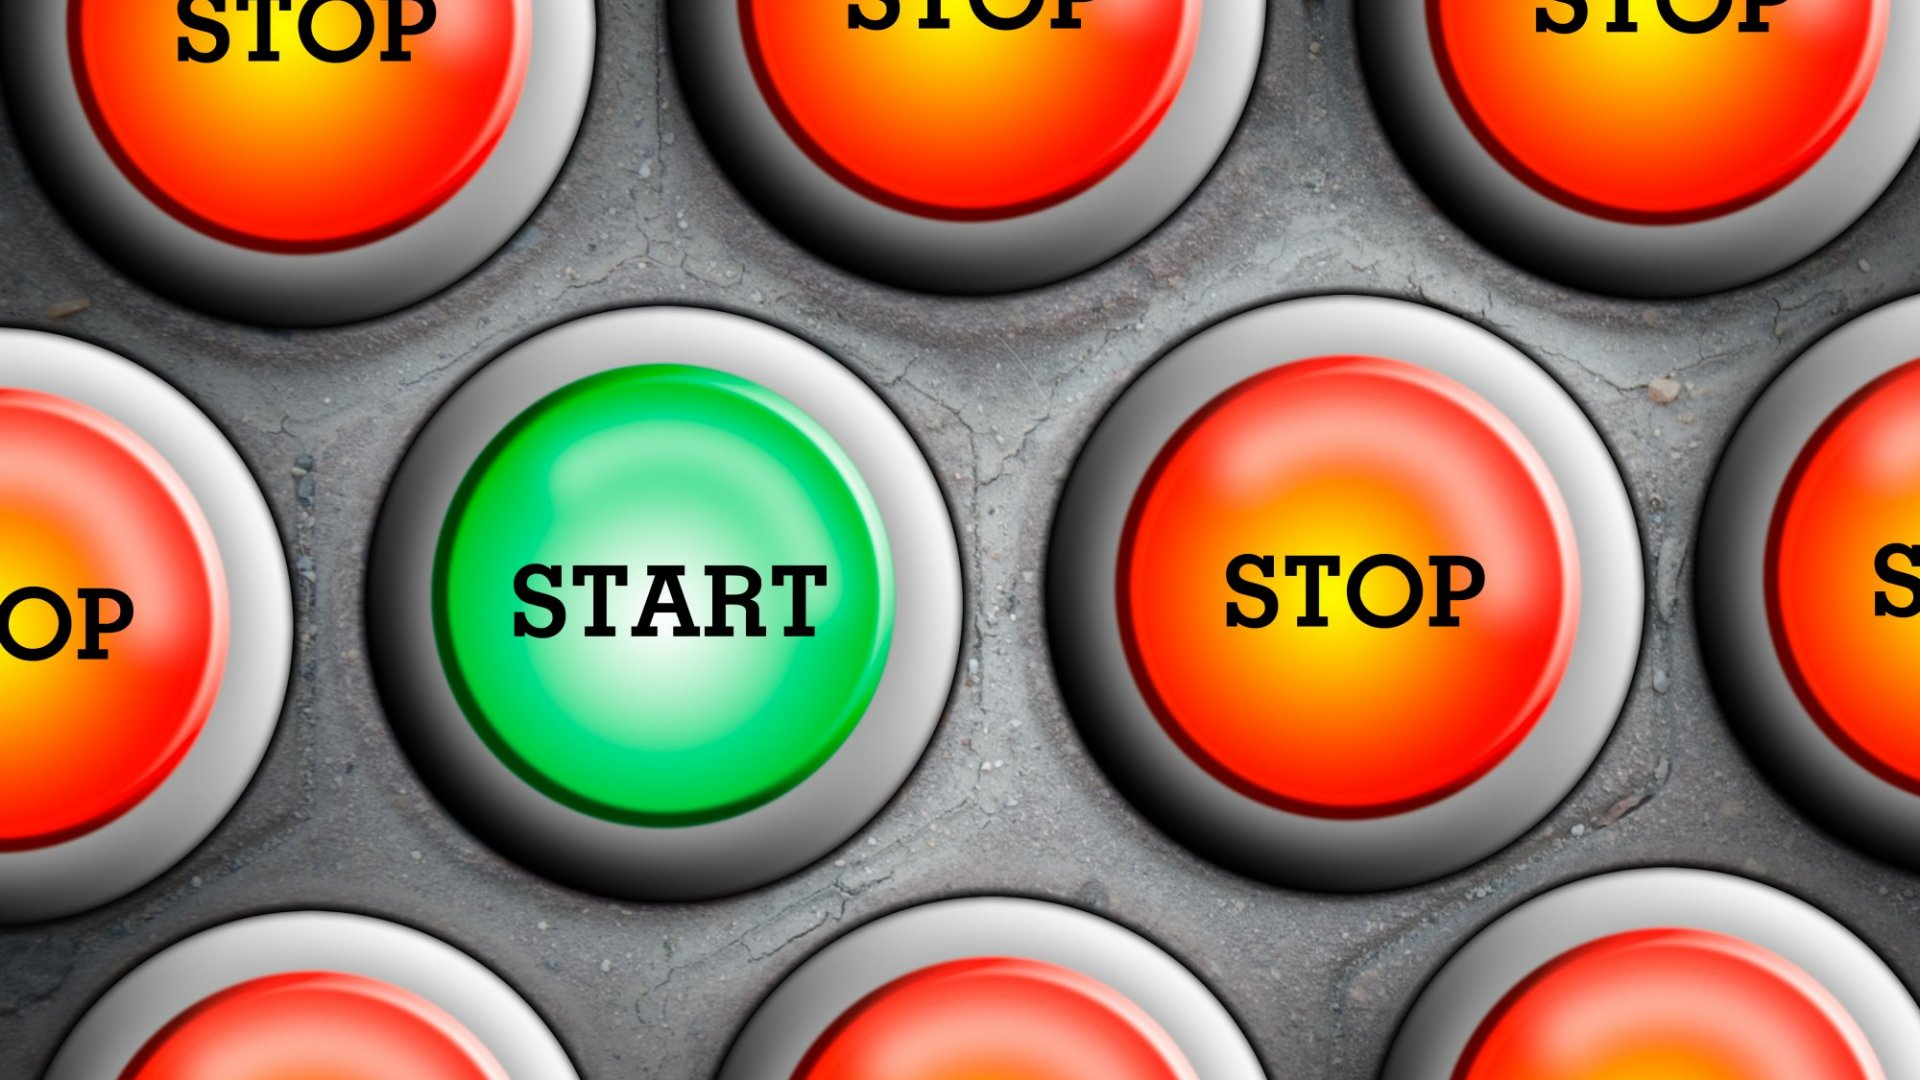 Stop start marketing is a waste of time and money.